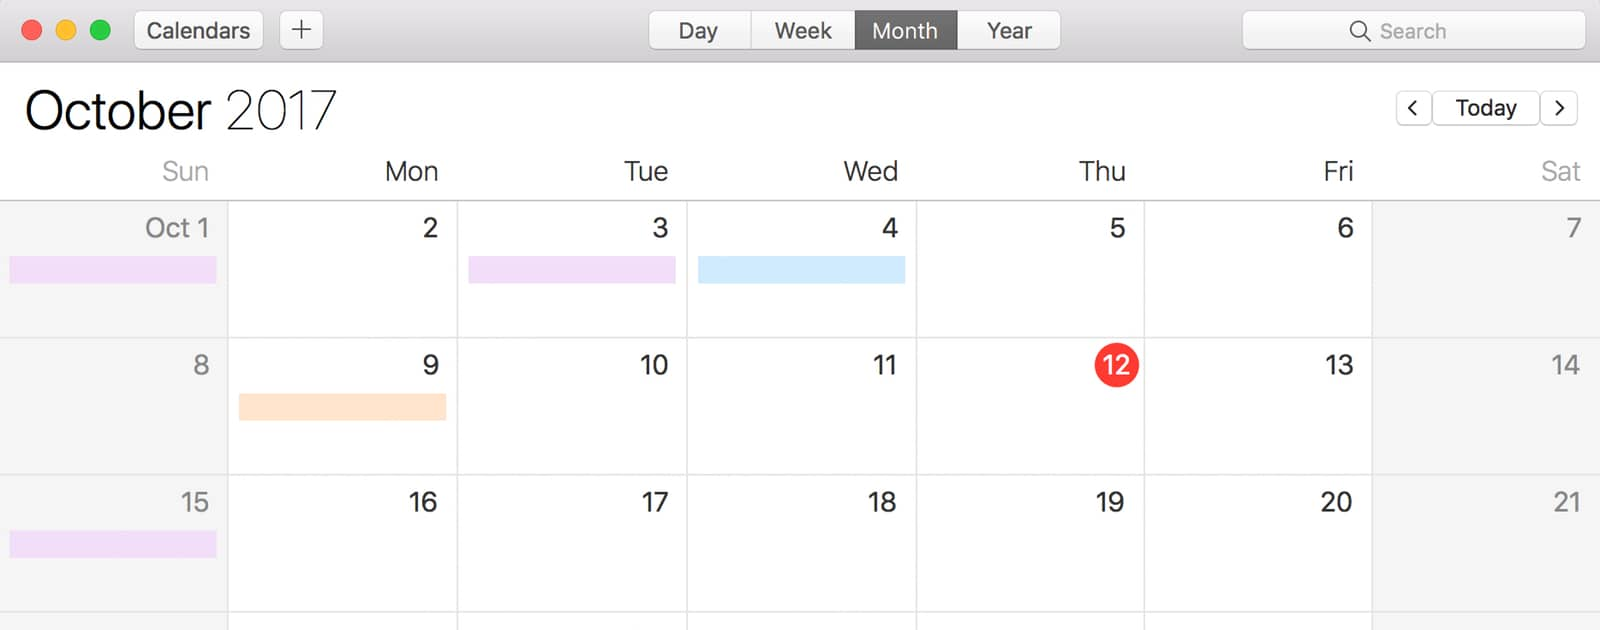 iOS: How to Add Shared Google Calendars on Your iPhone - The Mac